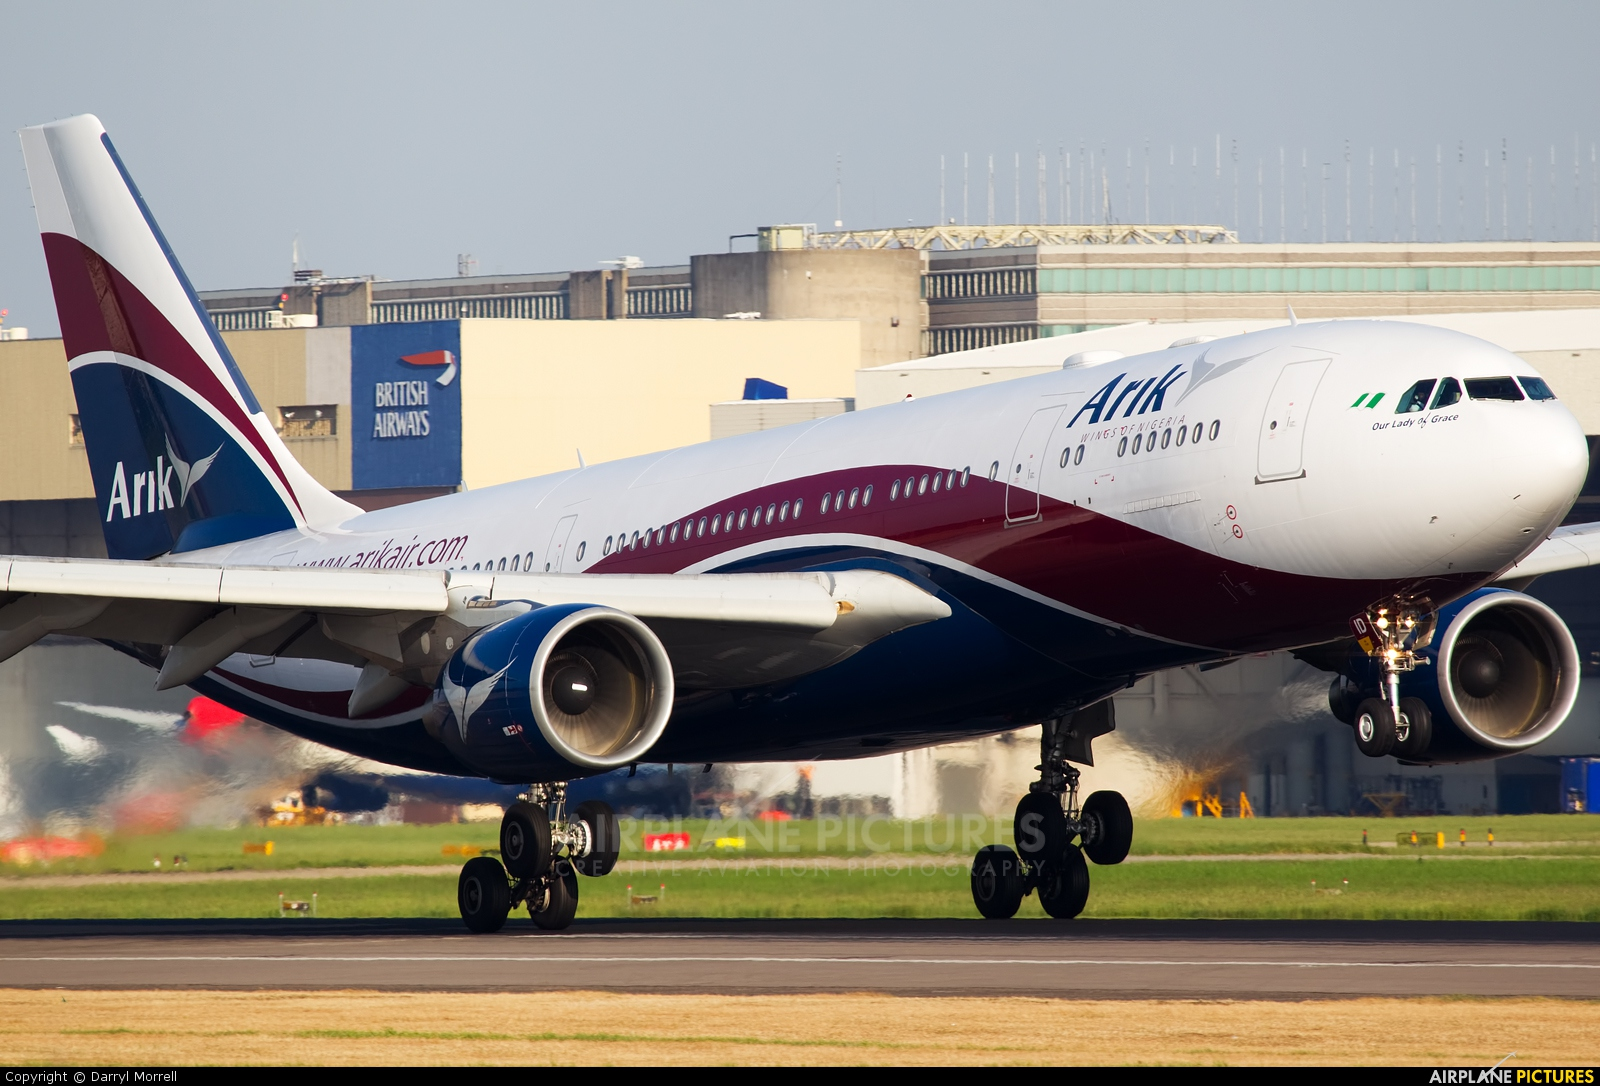 Arik Air 5N-JID aircraft at London - Heathrow